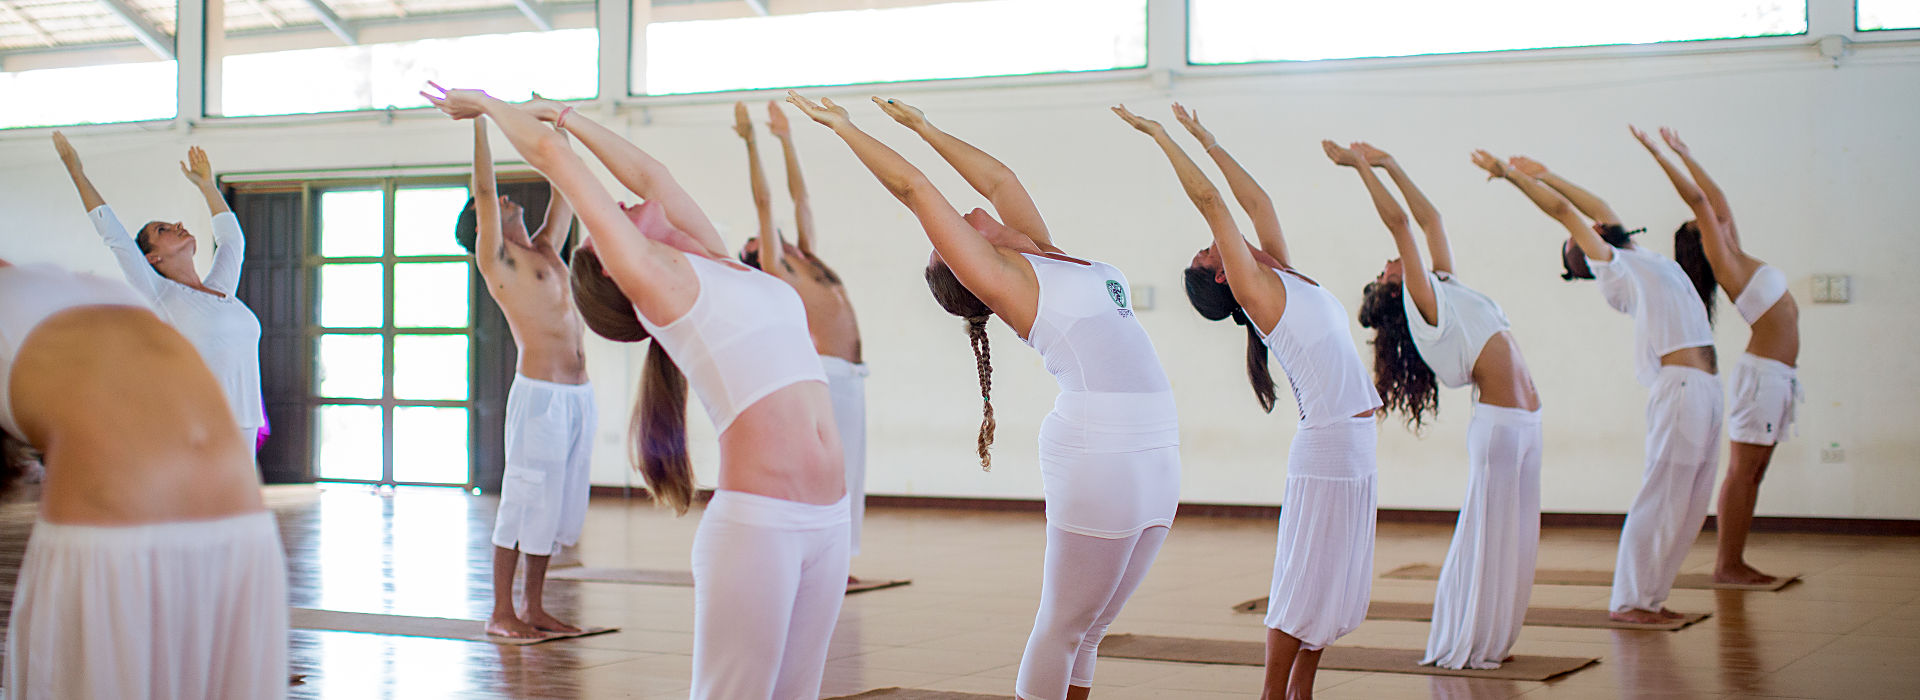 How does yoga help digestion? 5